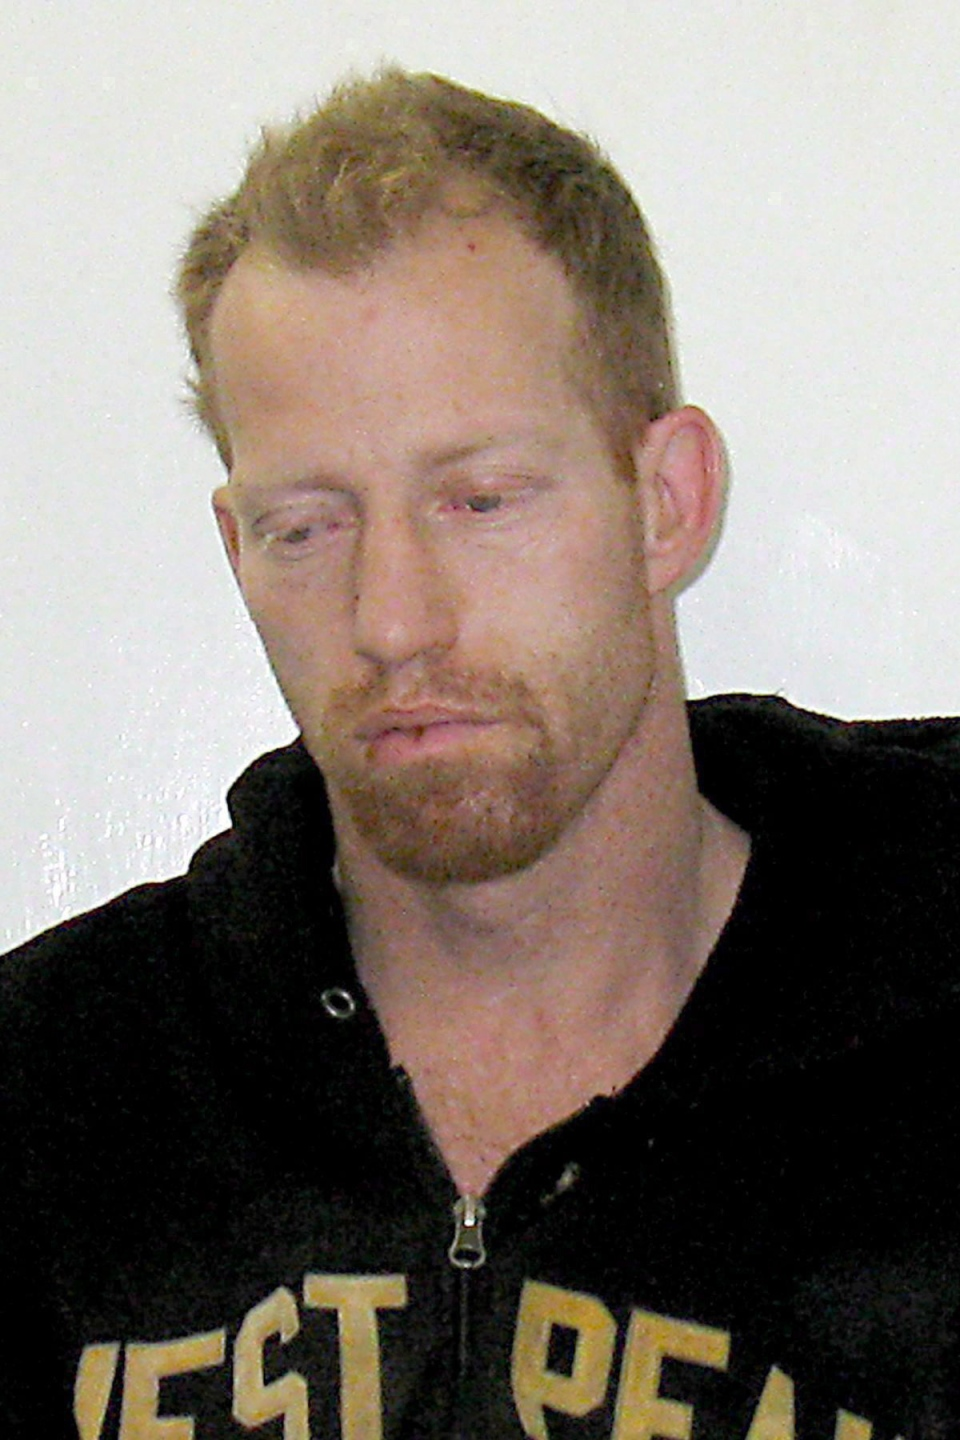 Travis Vader is shown in an RCMP handout photo. (RCMP)